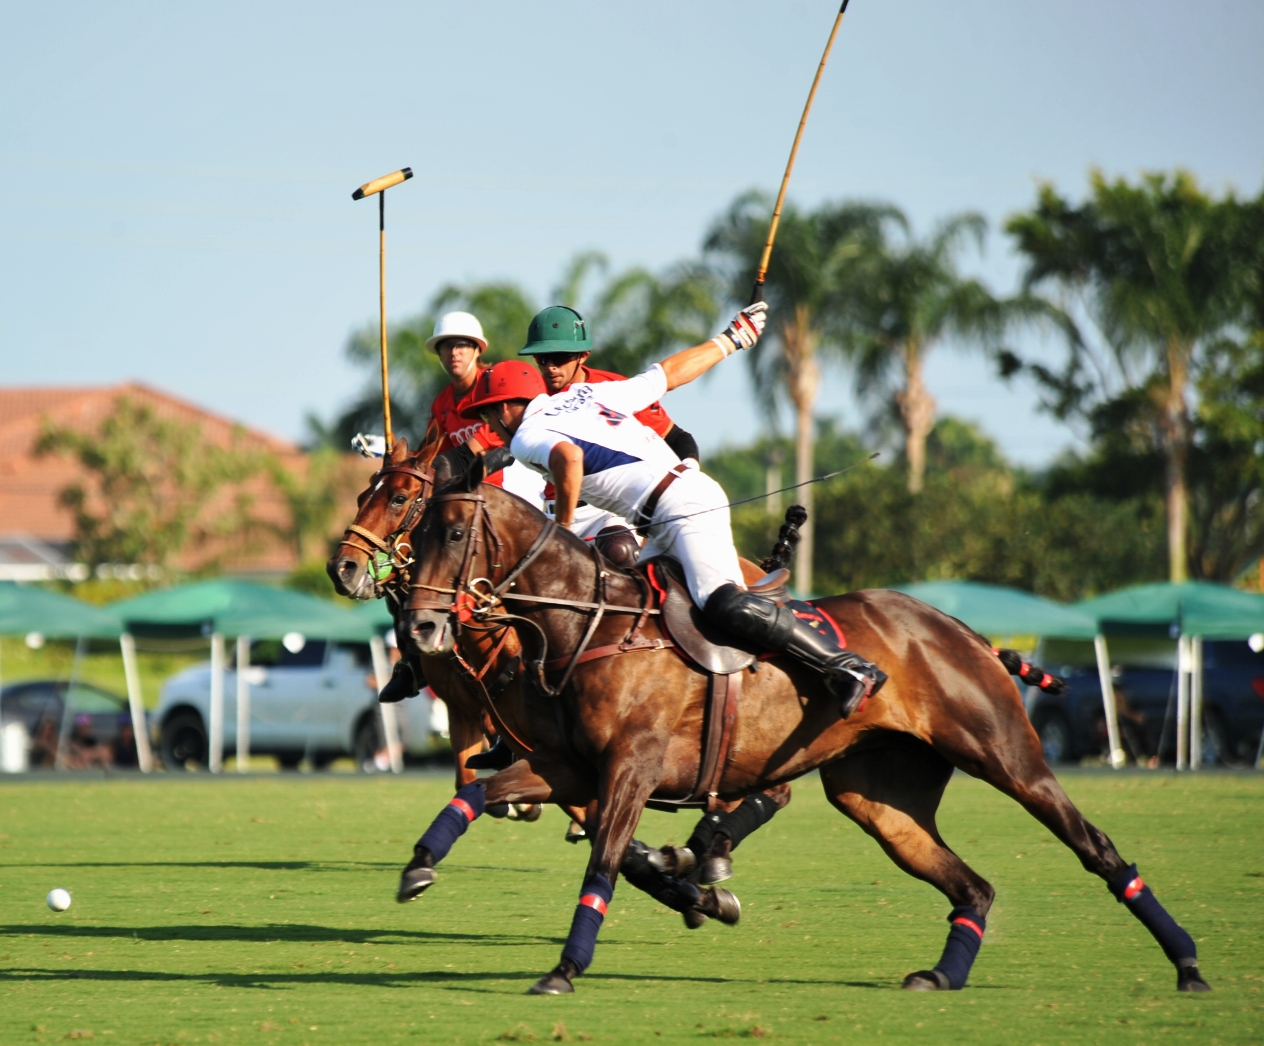 palm beach home and garden palm beach polo america s equestrian just a few miles west of palm beach lies one of the equestrian capitals of the world wellington home of the palm beach polo scene